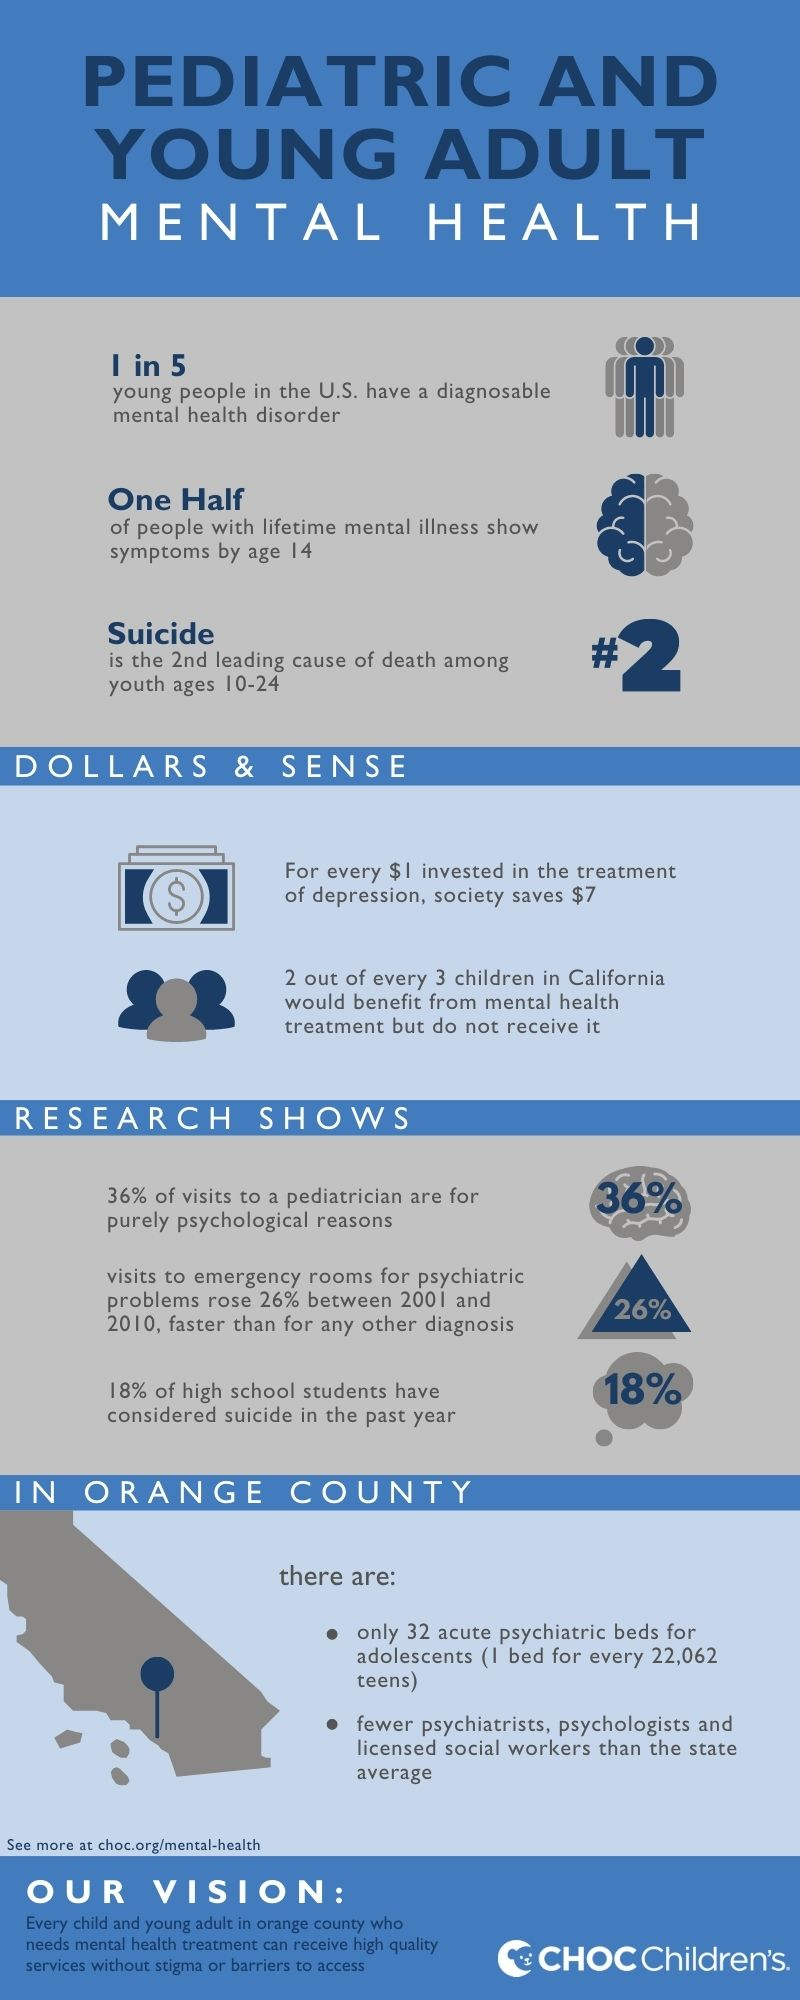 Pediatric and Young Adult Mental Health graphic